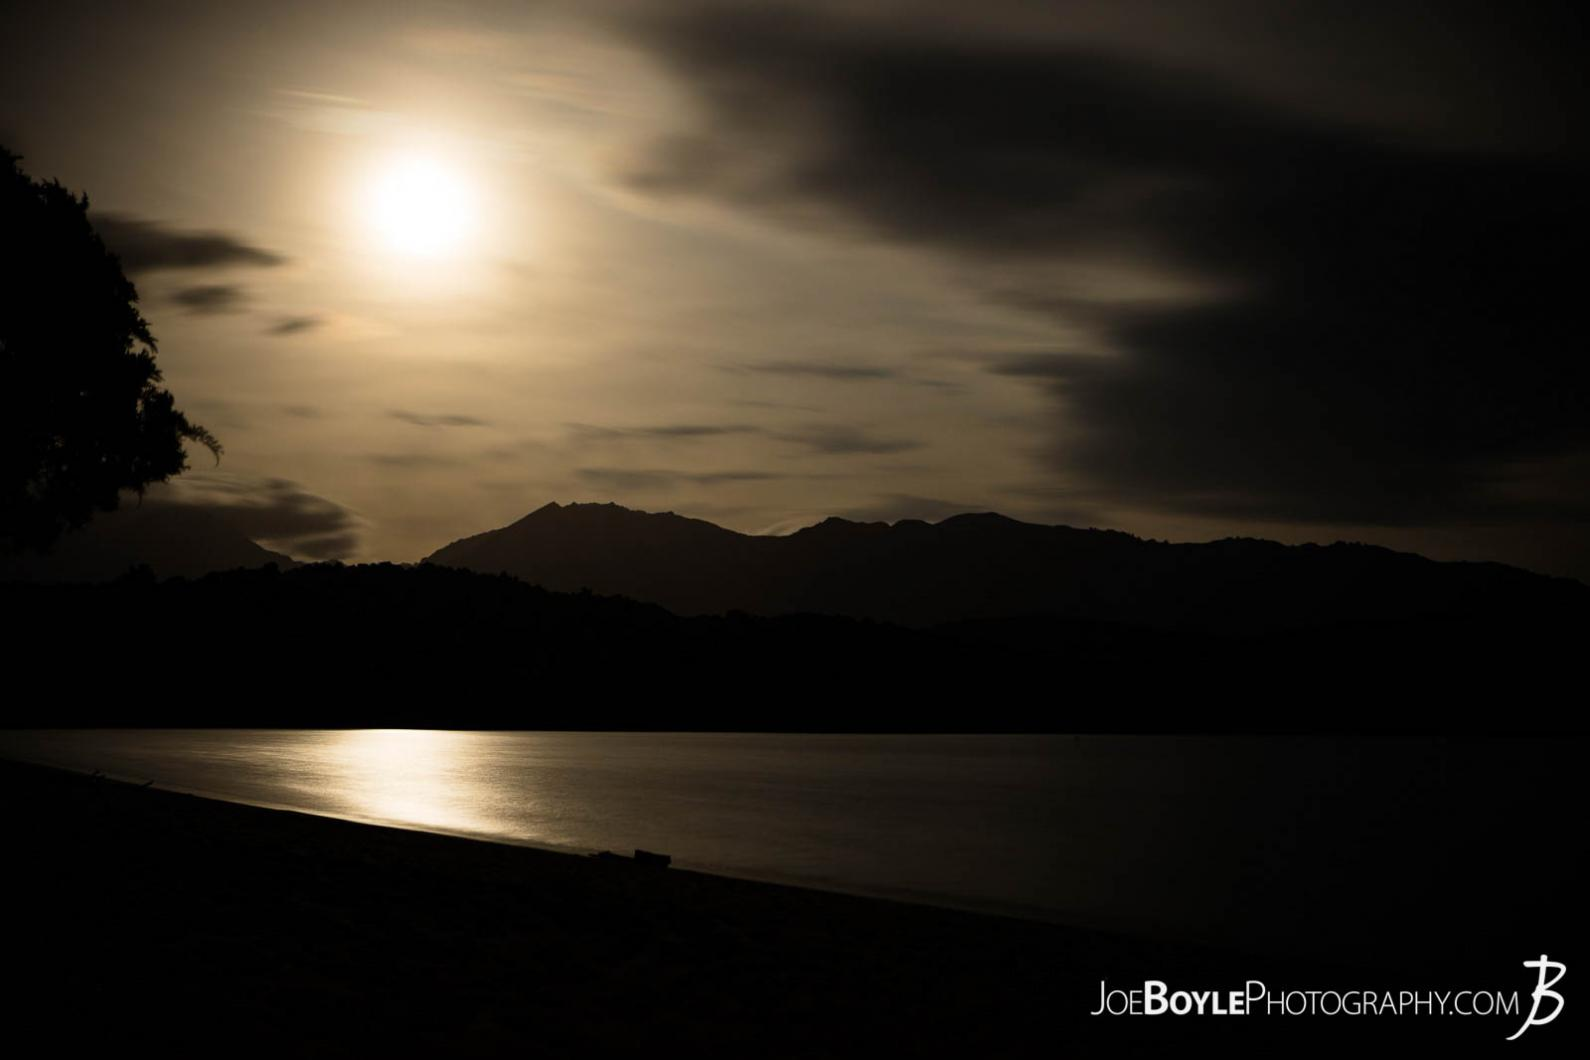 moon-over-the-mountains-with-reflection